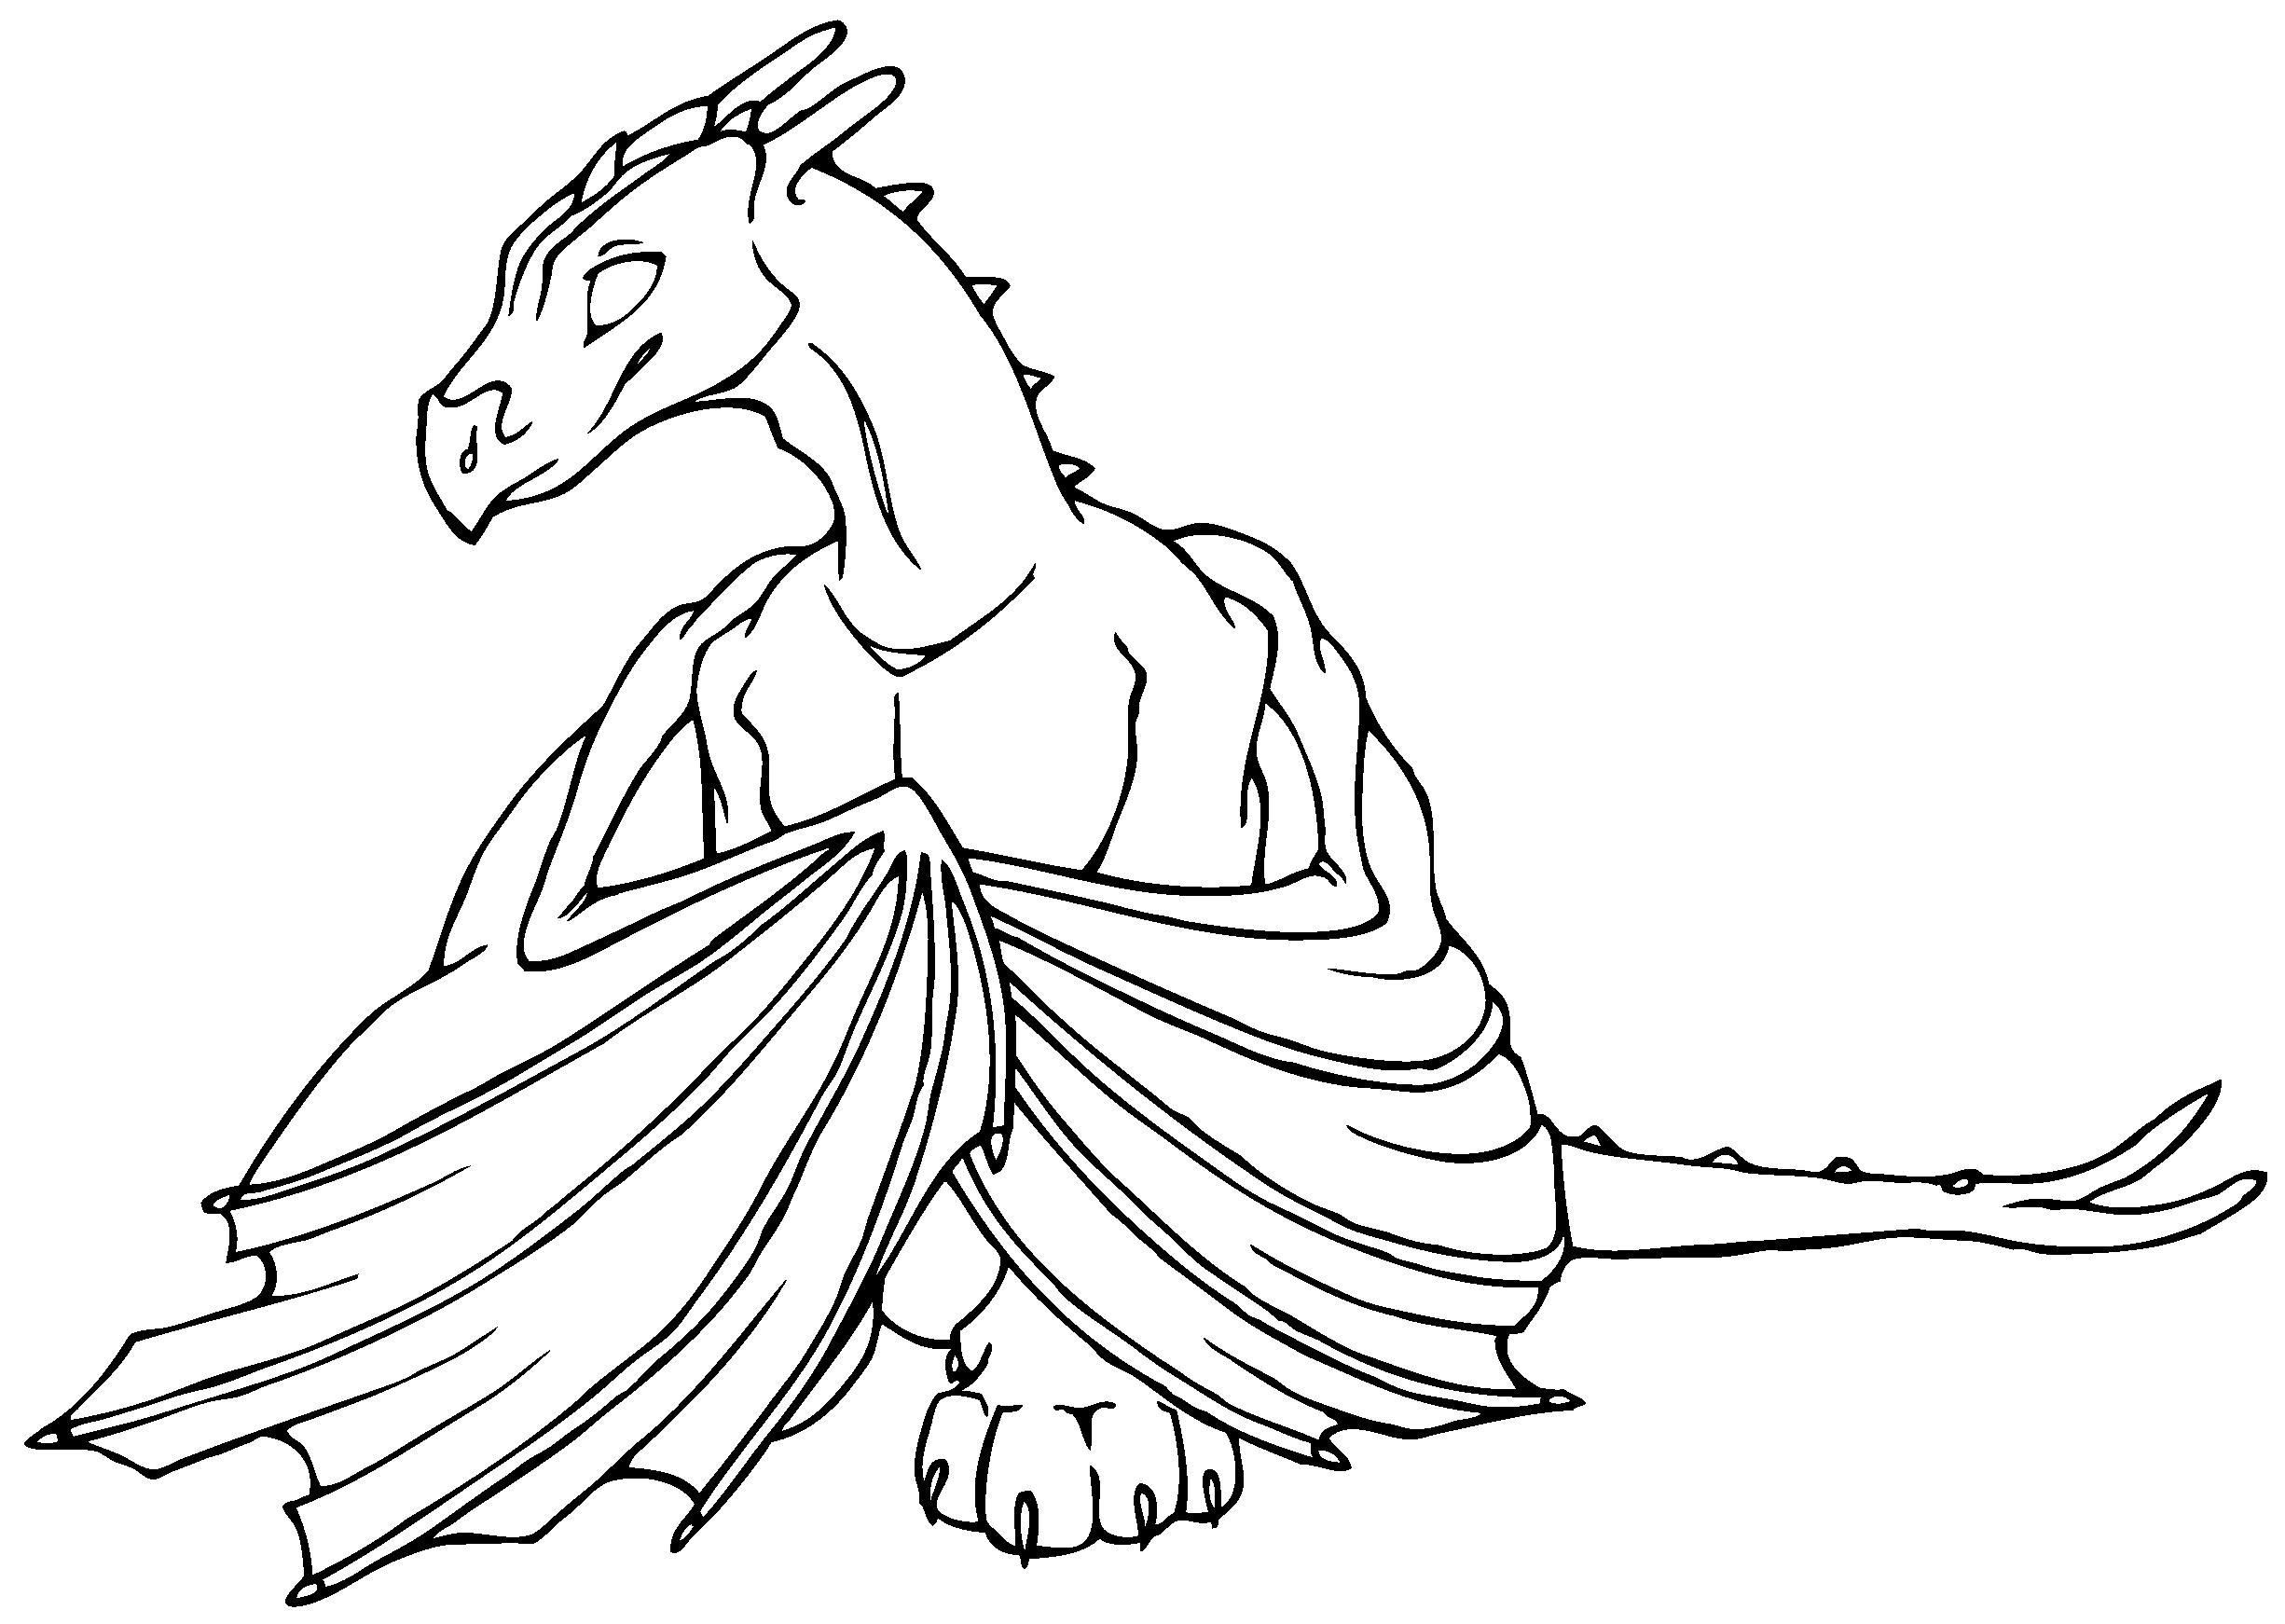 16 Printable Colouring In Dragon Dragon Coloring Page Realistic Dragon Dinosaur Coloring Pages